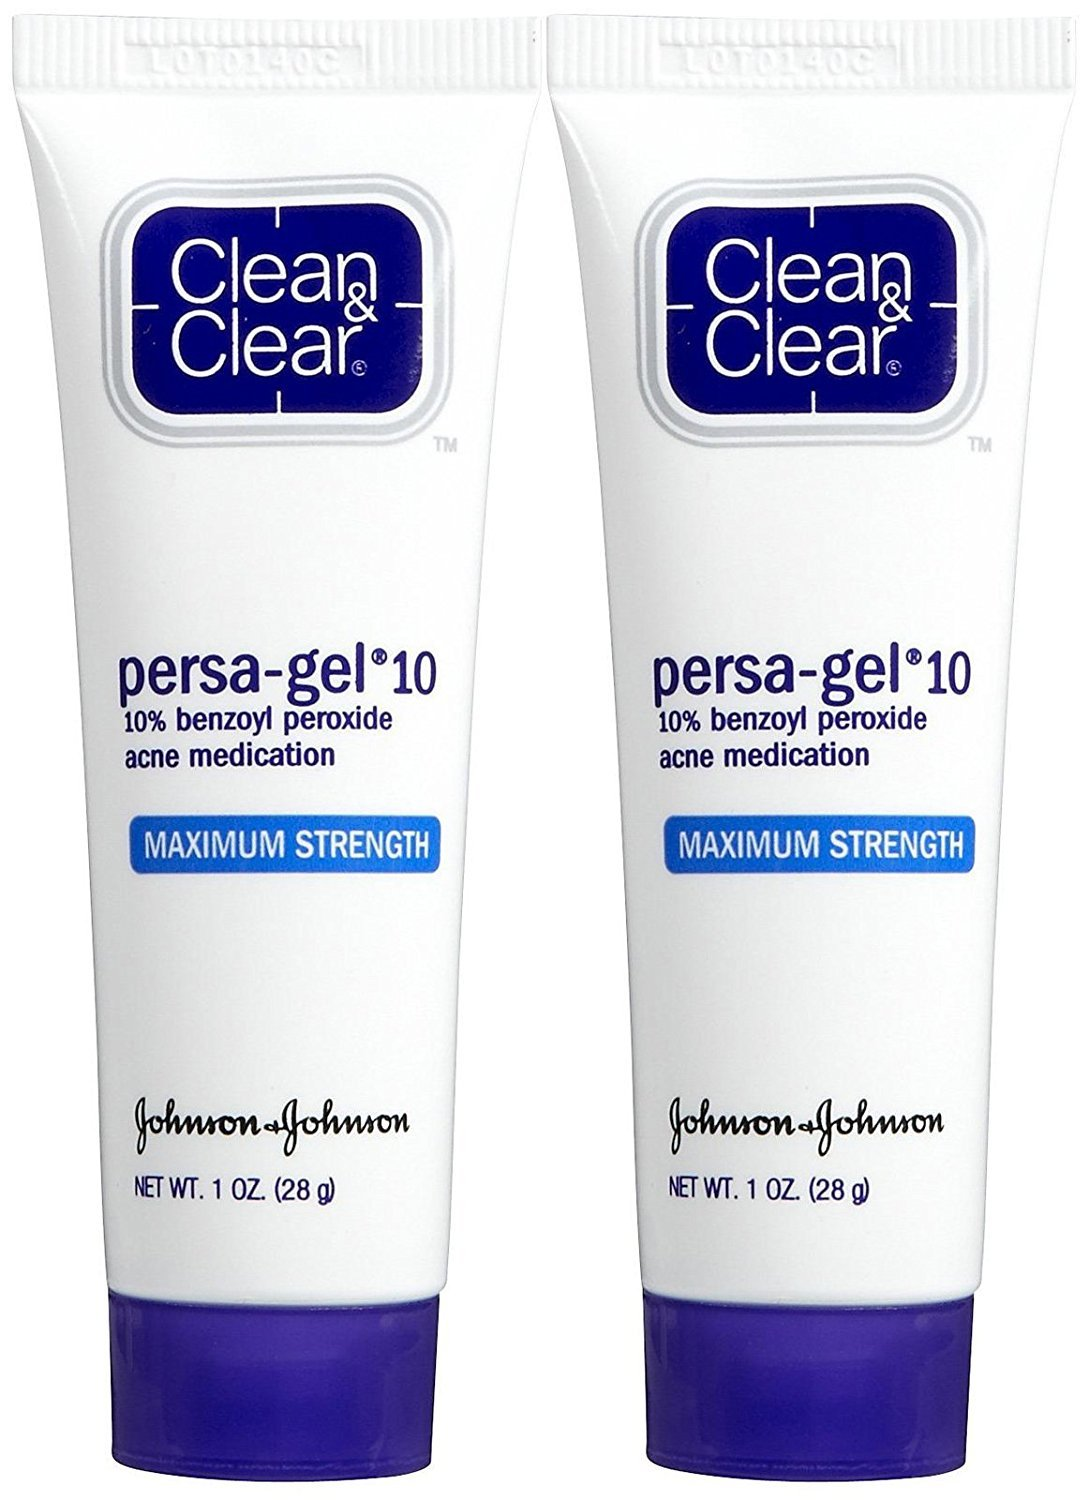 Clean & Clear Persa- Gel 10 Acne Treatment, Maximum Strength, 1 oz, 2 pk